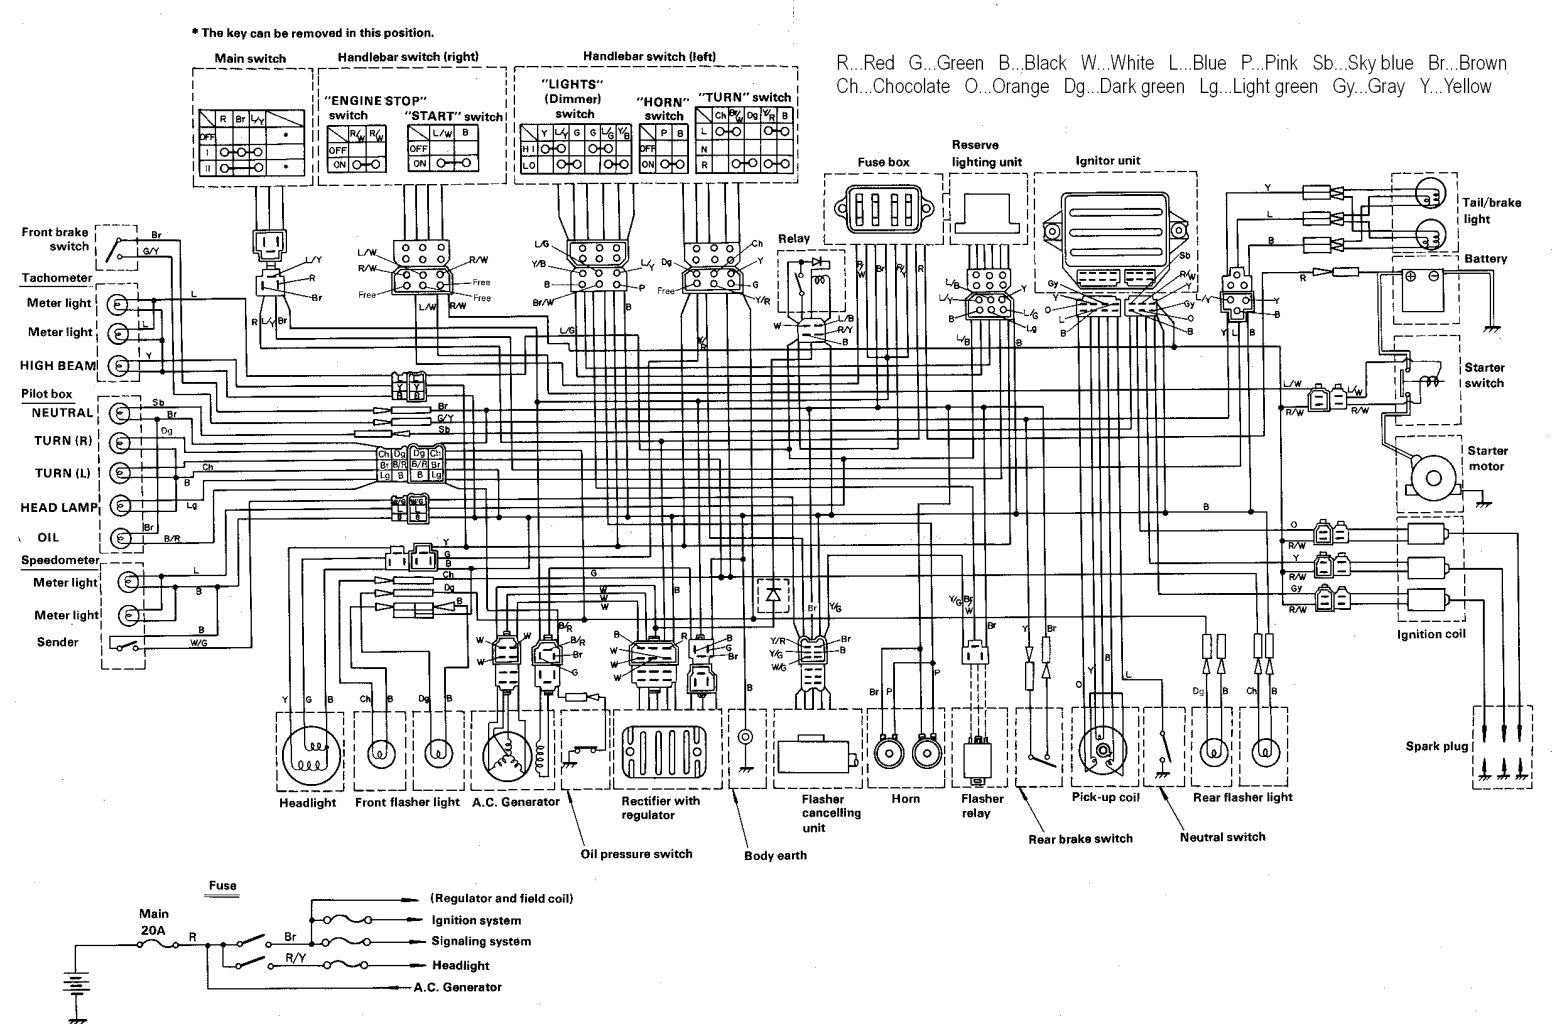 hight resolution of 1981 yamaha seca wiring diagram wiring diagram 1981 1983 xv920 starting wiring diagram yamaha wiring